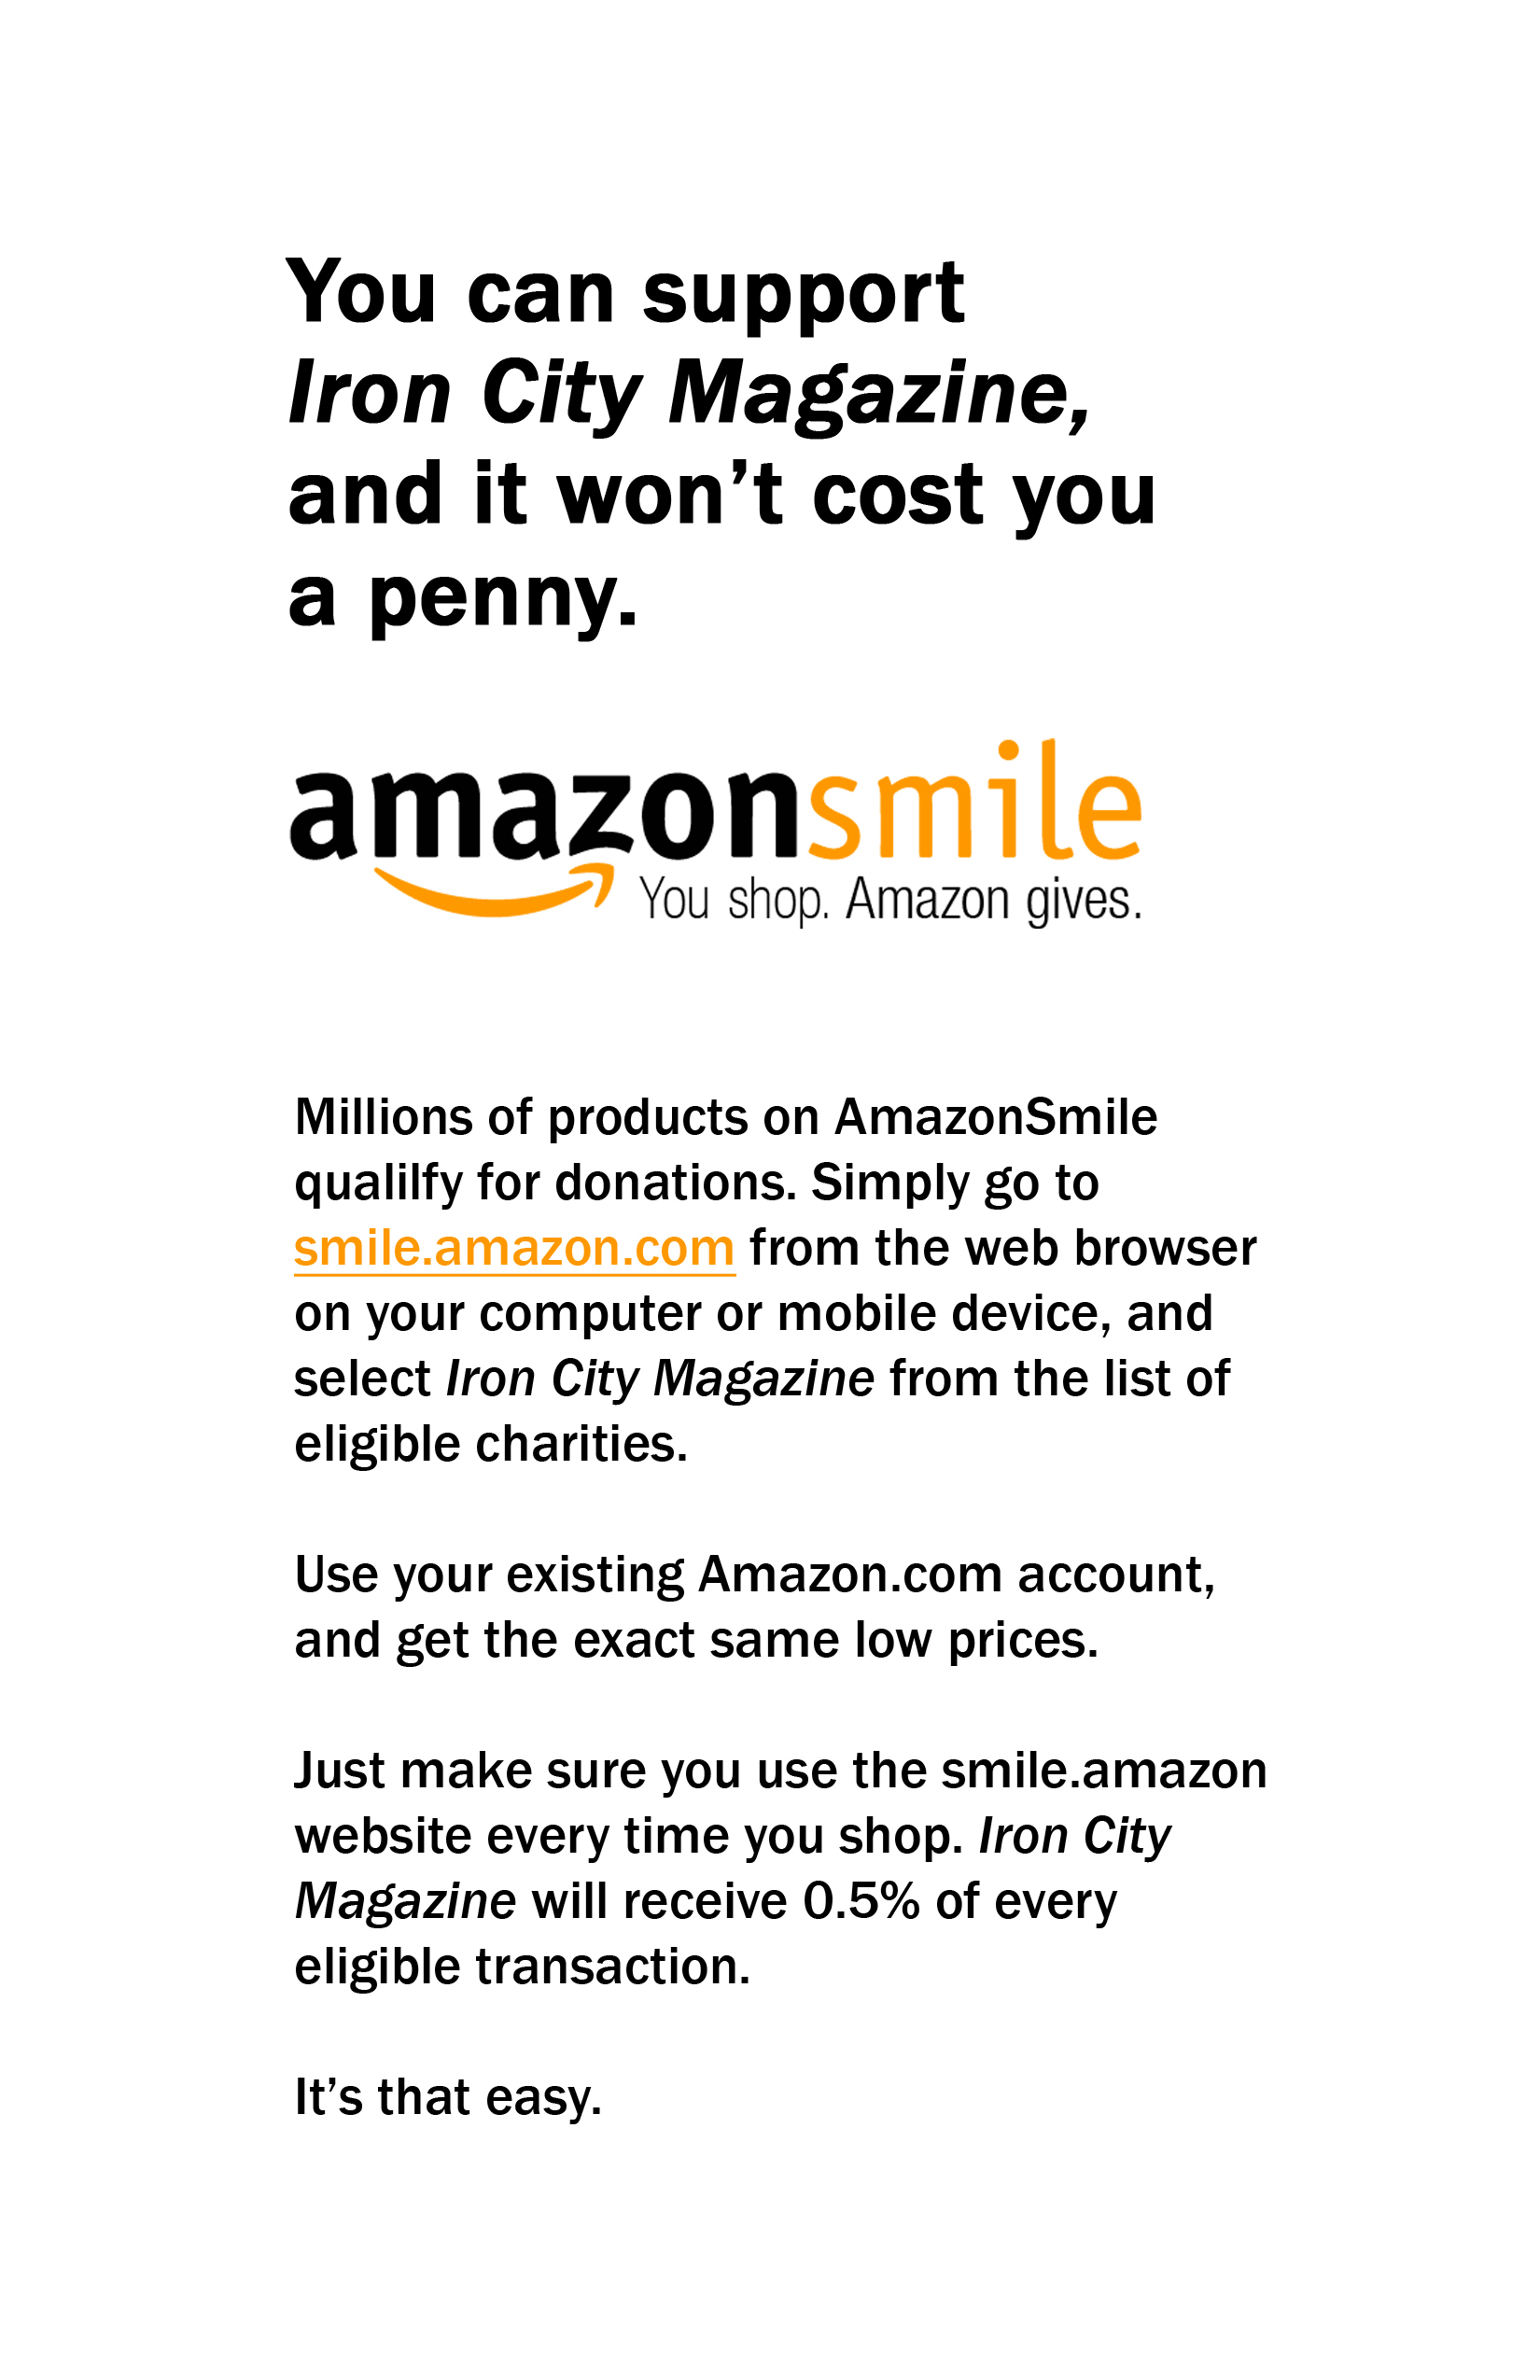 Smile Amazon Ad 2018 v2.jpg